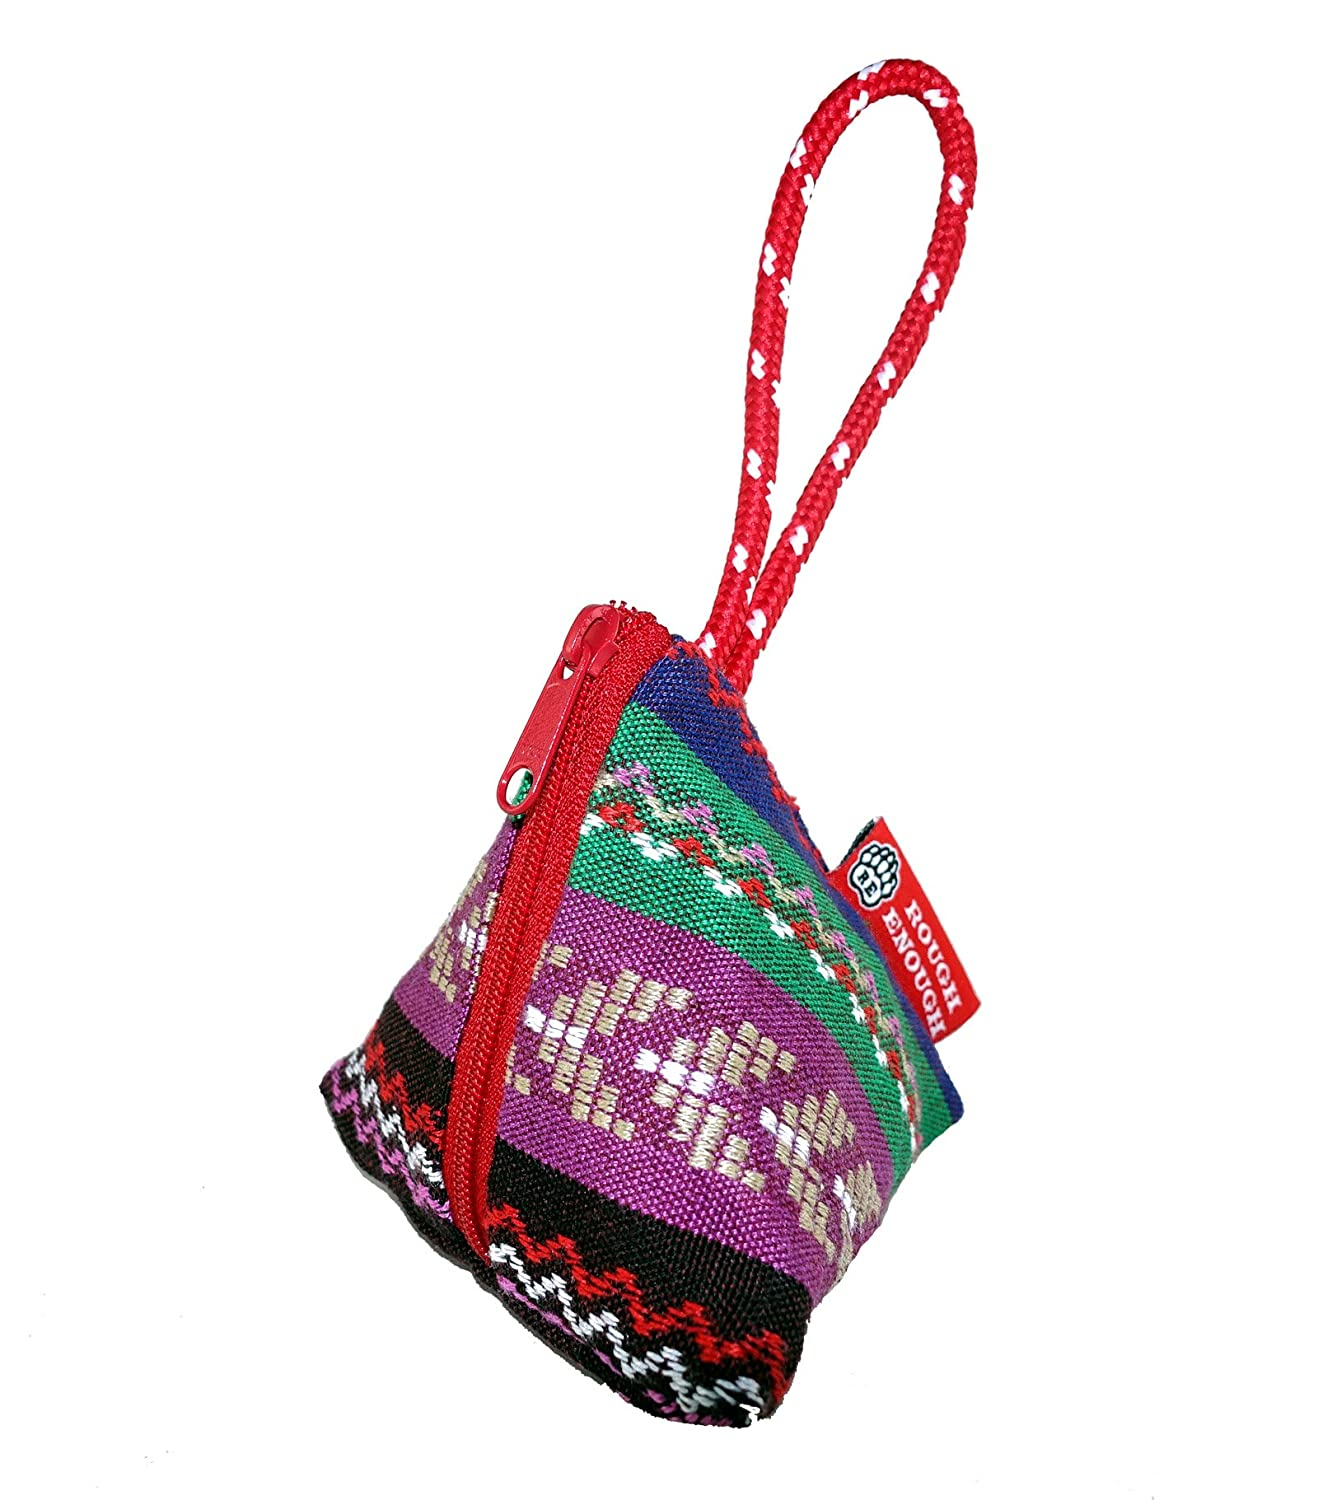 Rough Enough Cotton Folk Ethnic Boho Embroidery Vintage Portable Mini Triangle Wristlet Coin Pouch Purse Wallet Goody Bag Small Accessories Jewelry Storage Organizer for Kids Girls Women Home Outdoor ROUGH ENOUGH INC. RE8349